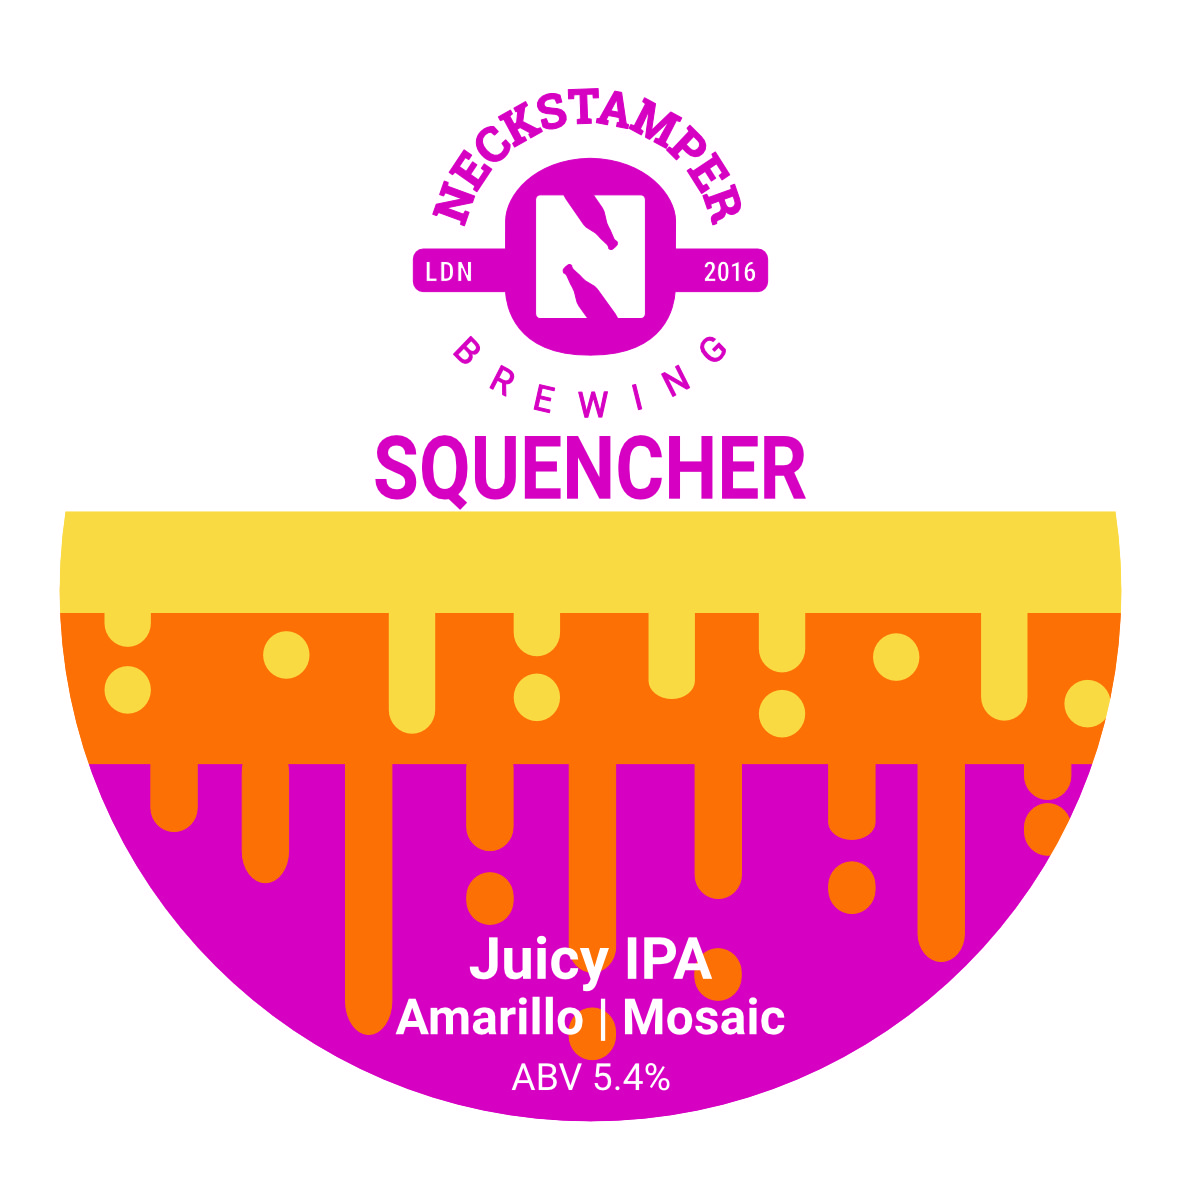 Drips Squencher 5-4abv.jpg